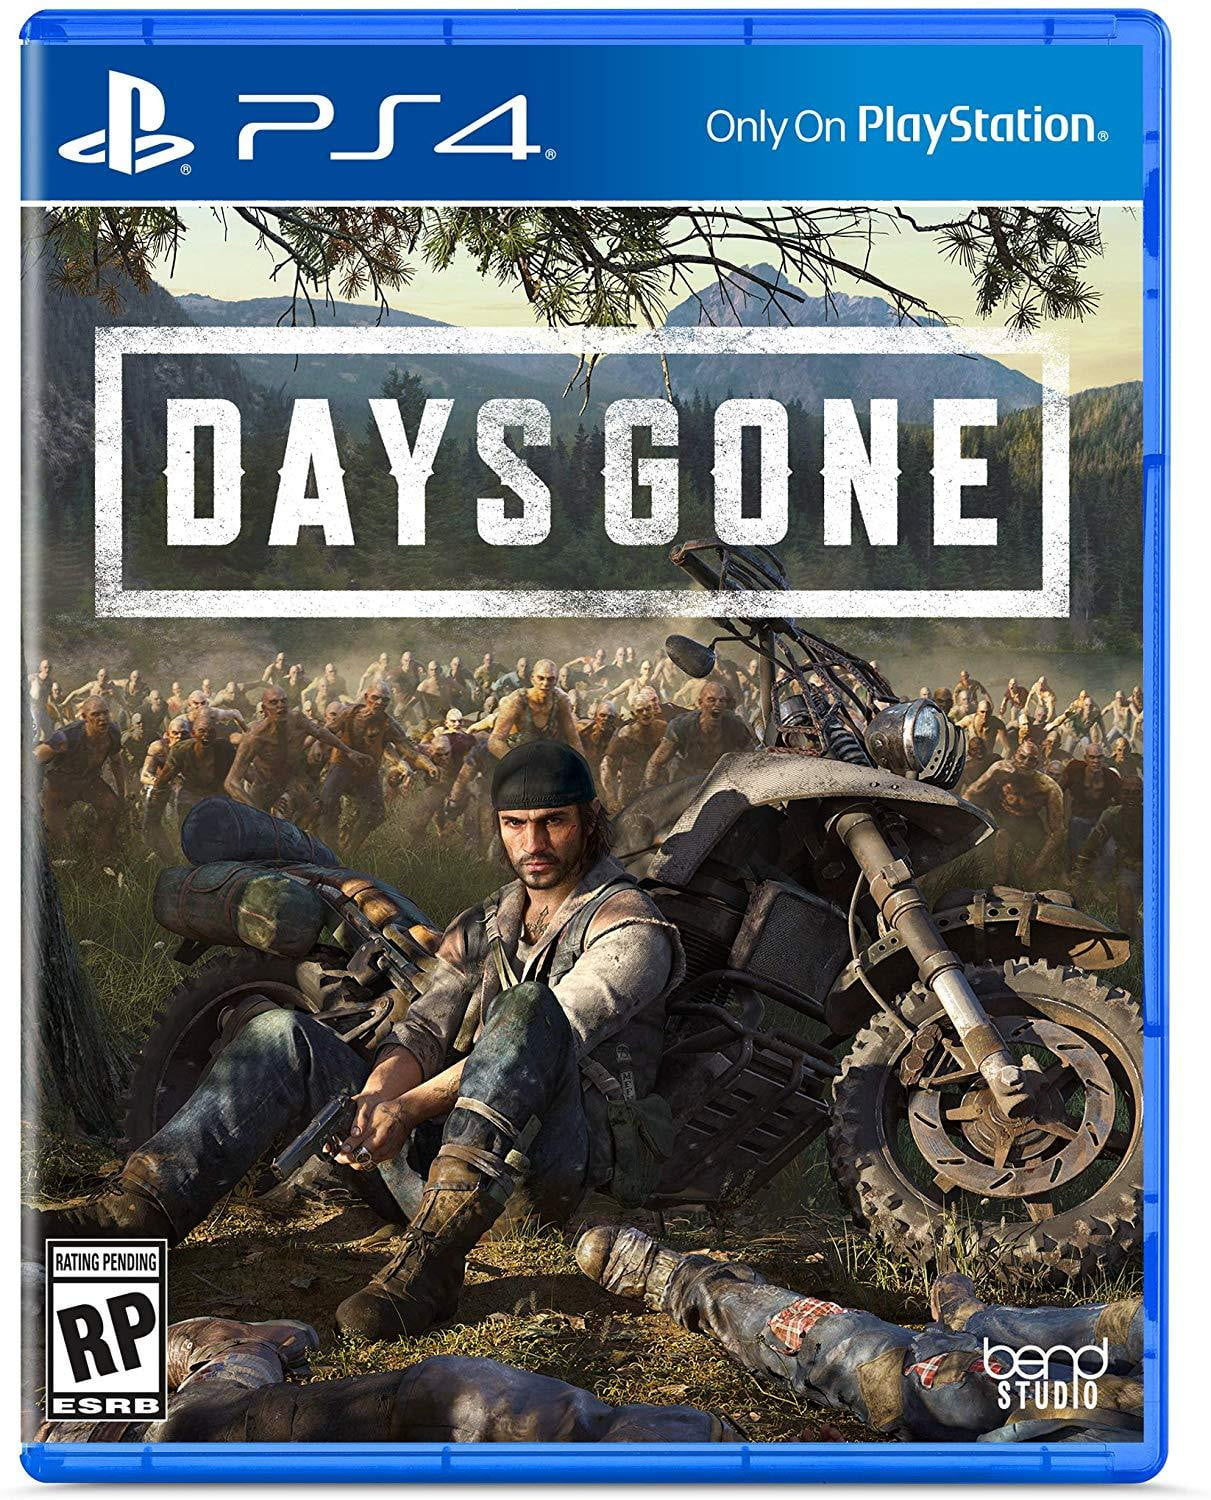 Buy Days Gone (PS4) PS4 Game in Egypt - Shamy Stores